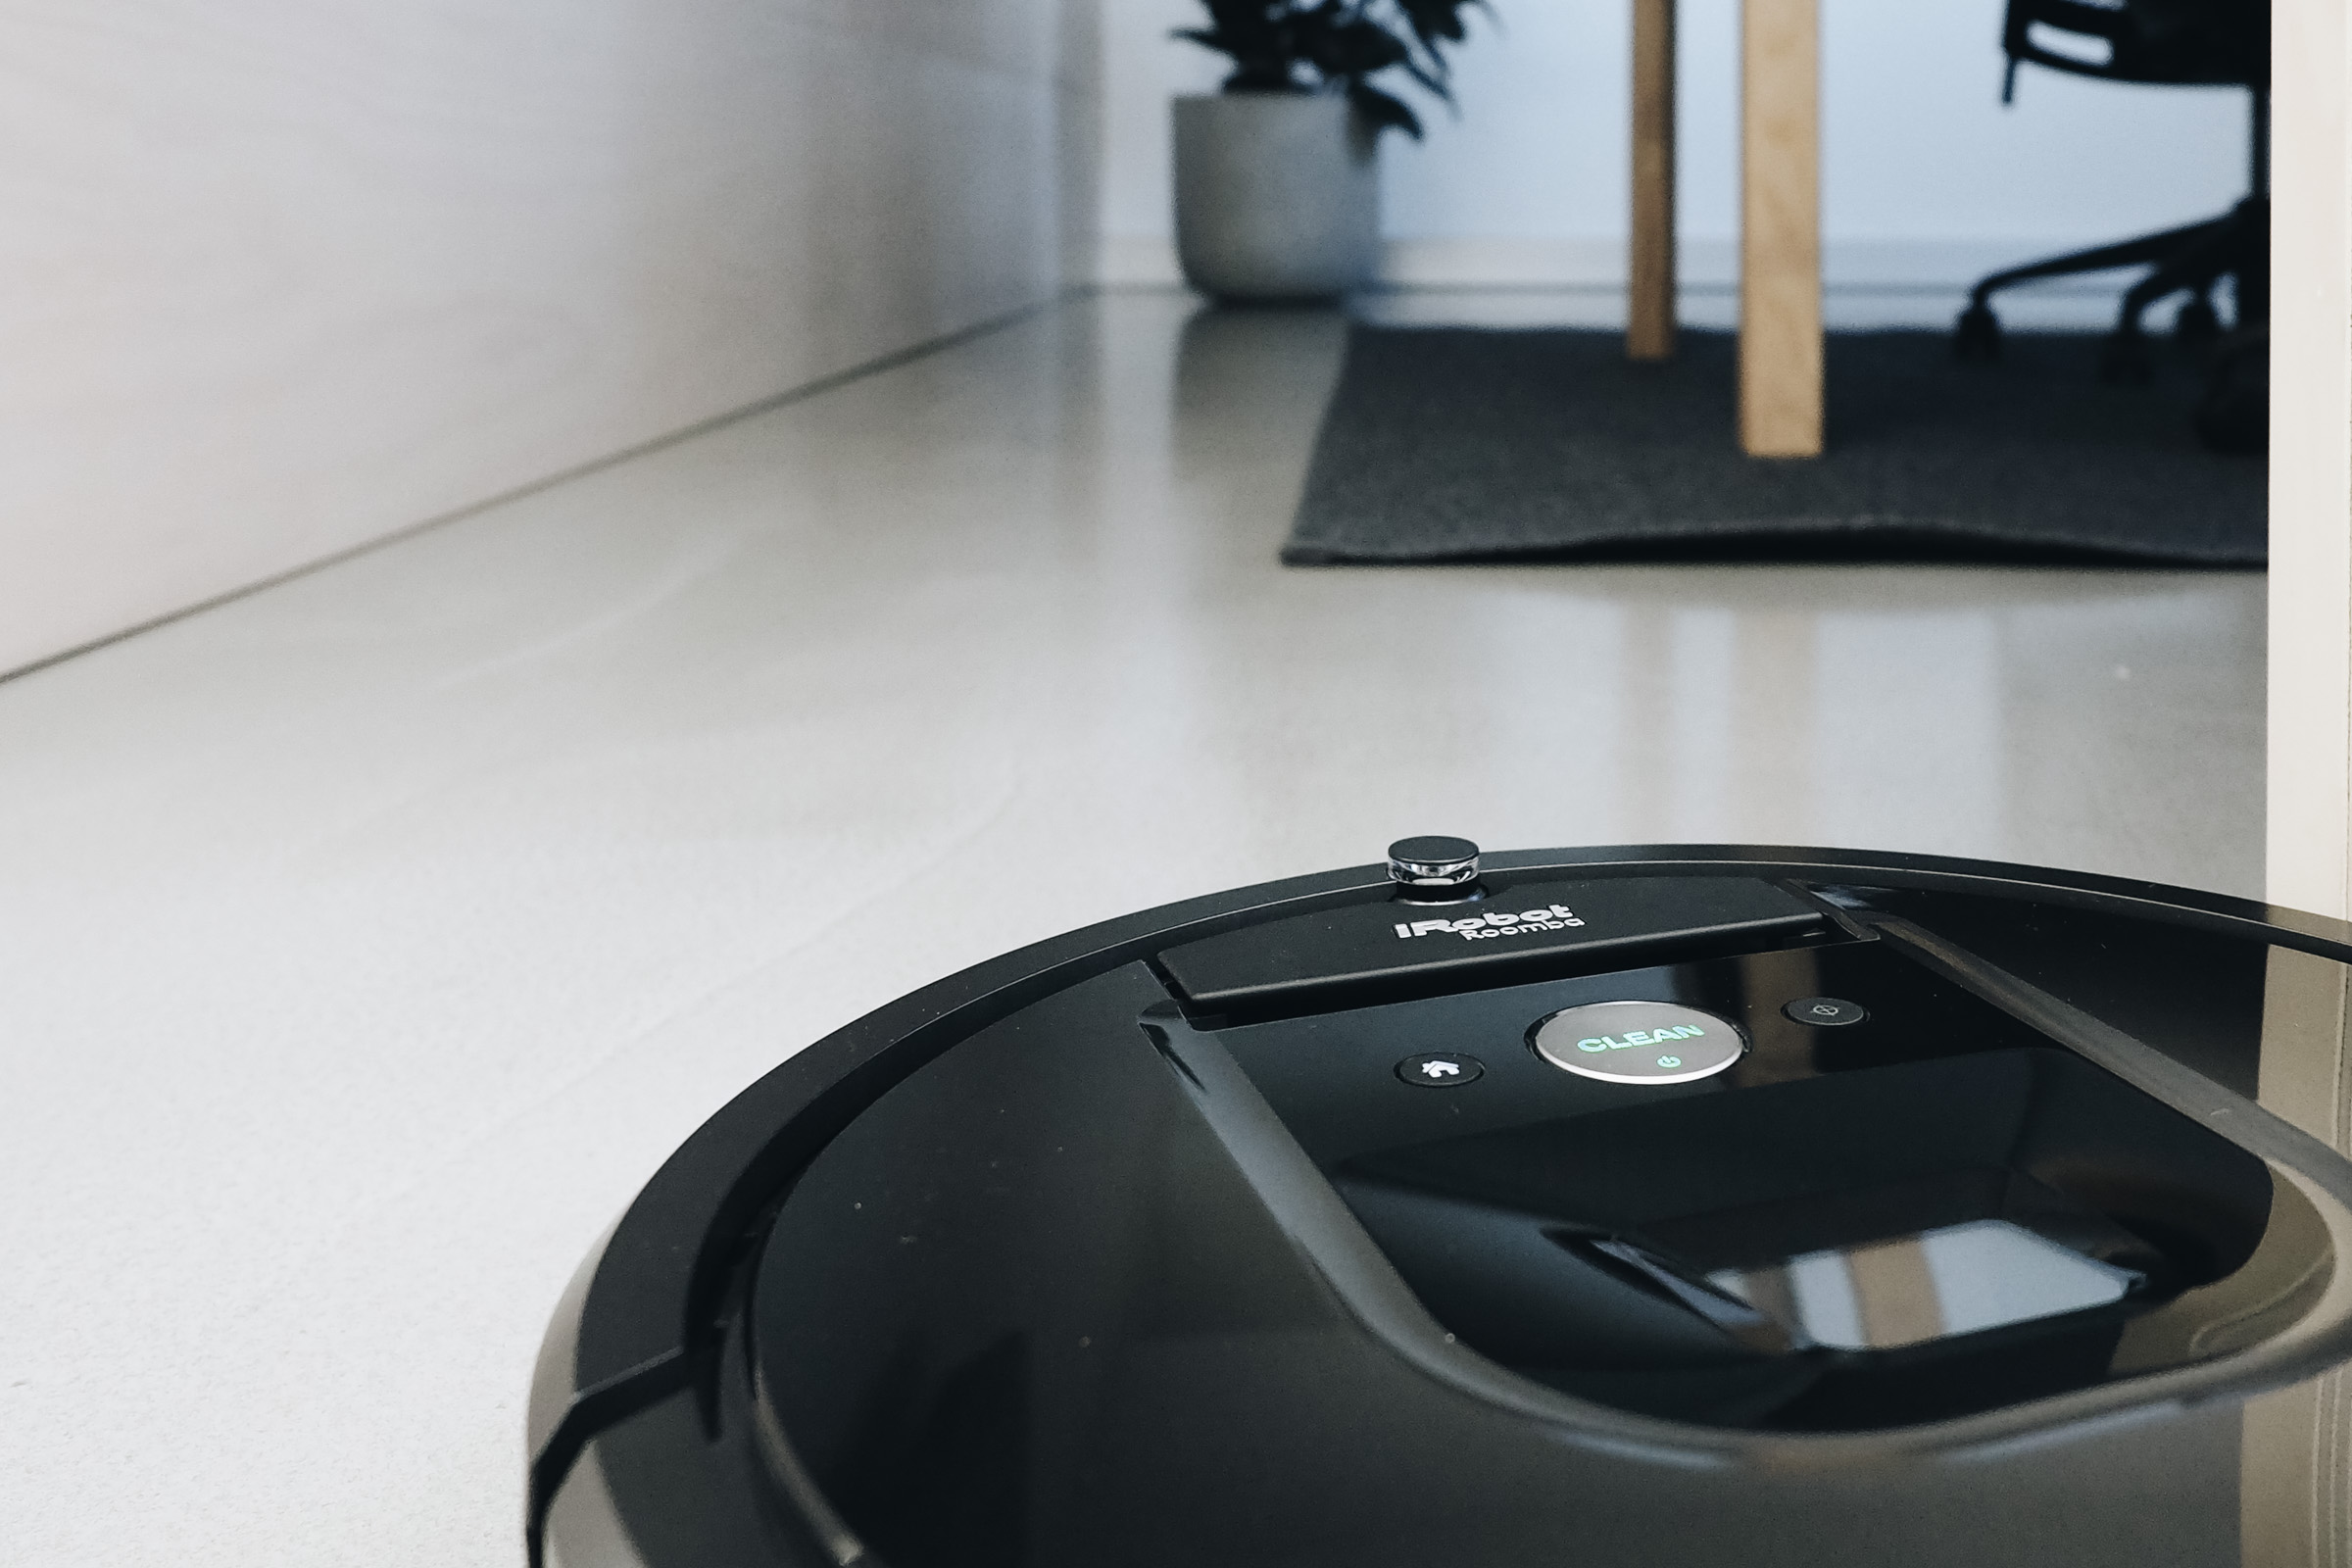 The Next Generation Of Cleaning Irobot Roomba 980 Review